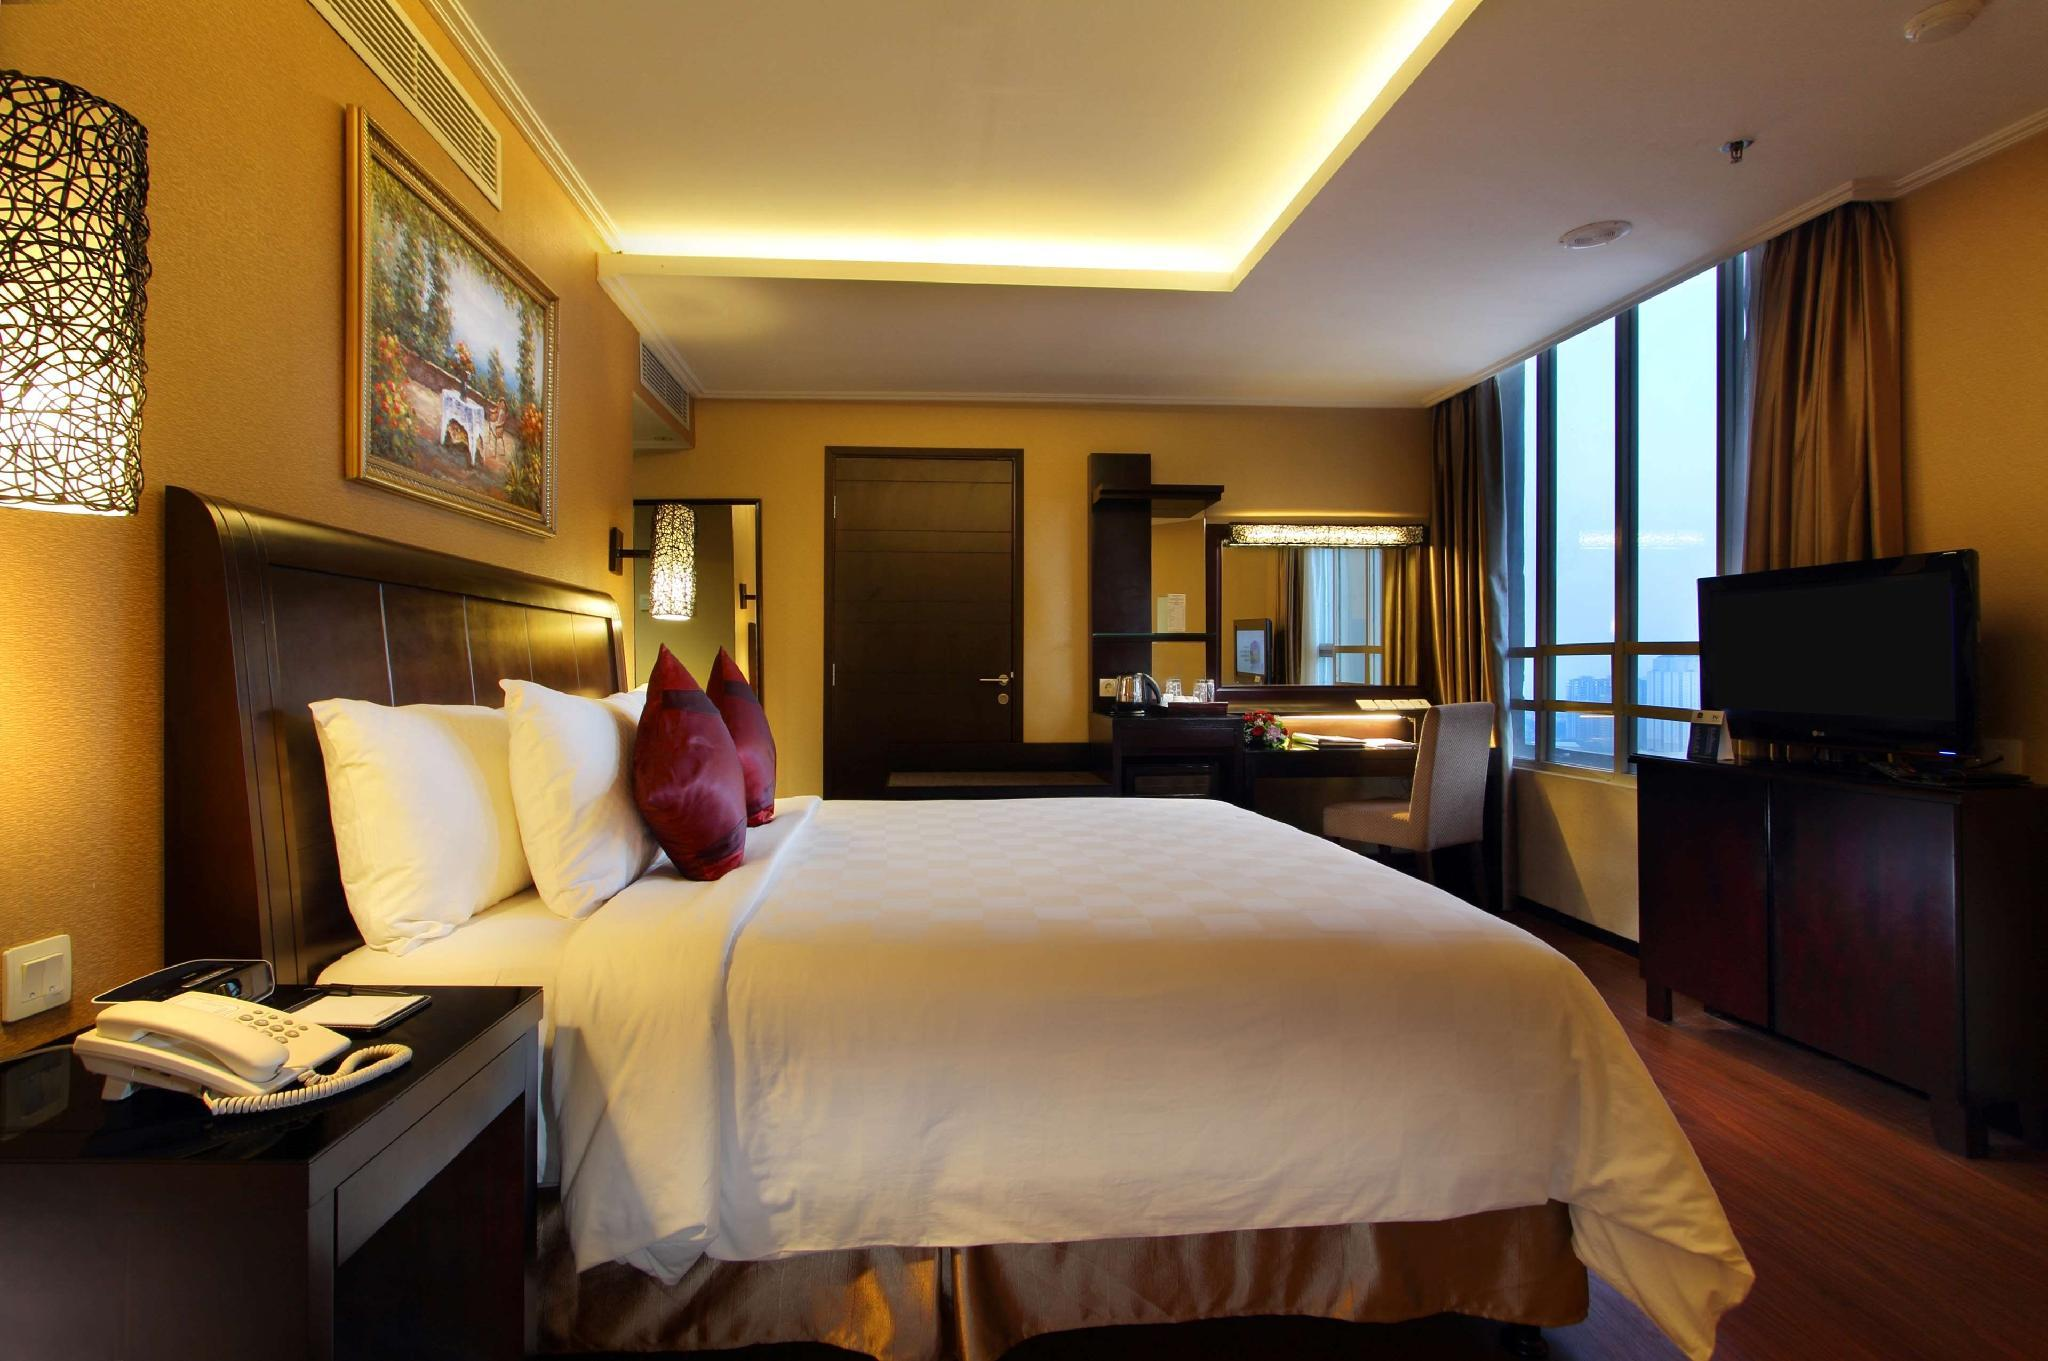 1 King Bed, Executive Room, with Breakfast